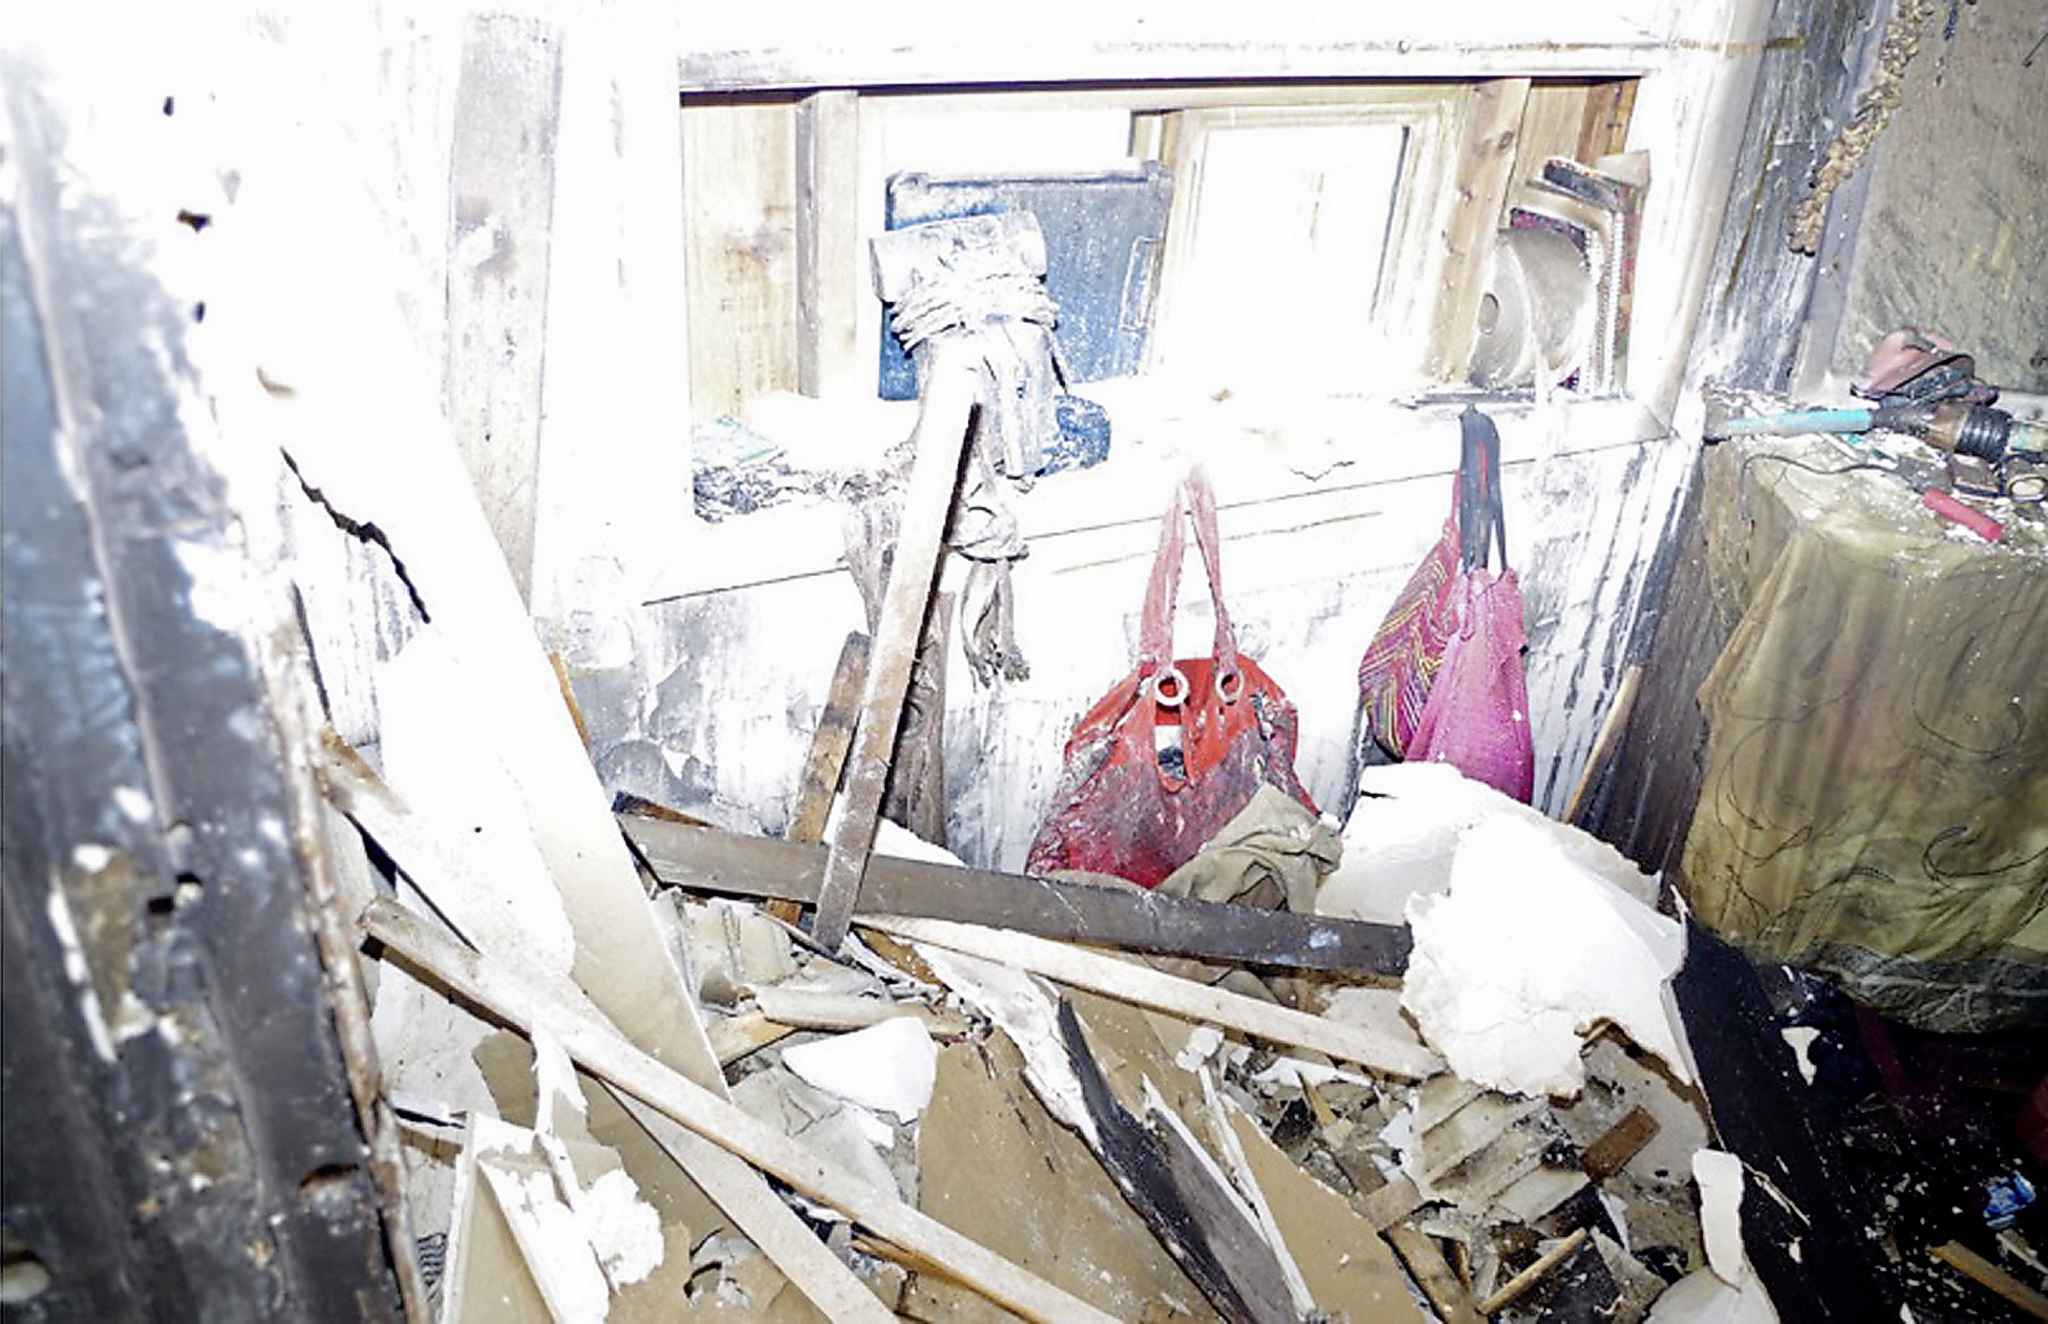 A photo from the trial shows Jeanenne  Fontaine's purses hanging on the wall in the bedroom of her Aberdeen Avenue home after the fire. (Winnipeg Free Press)